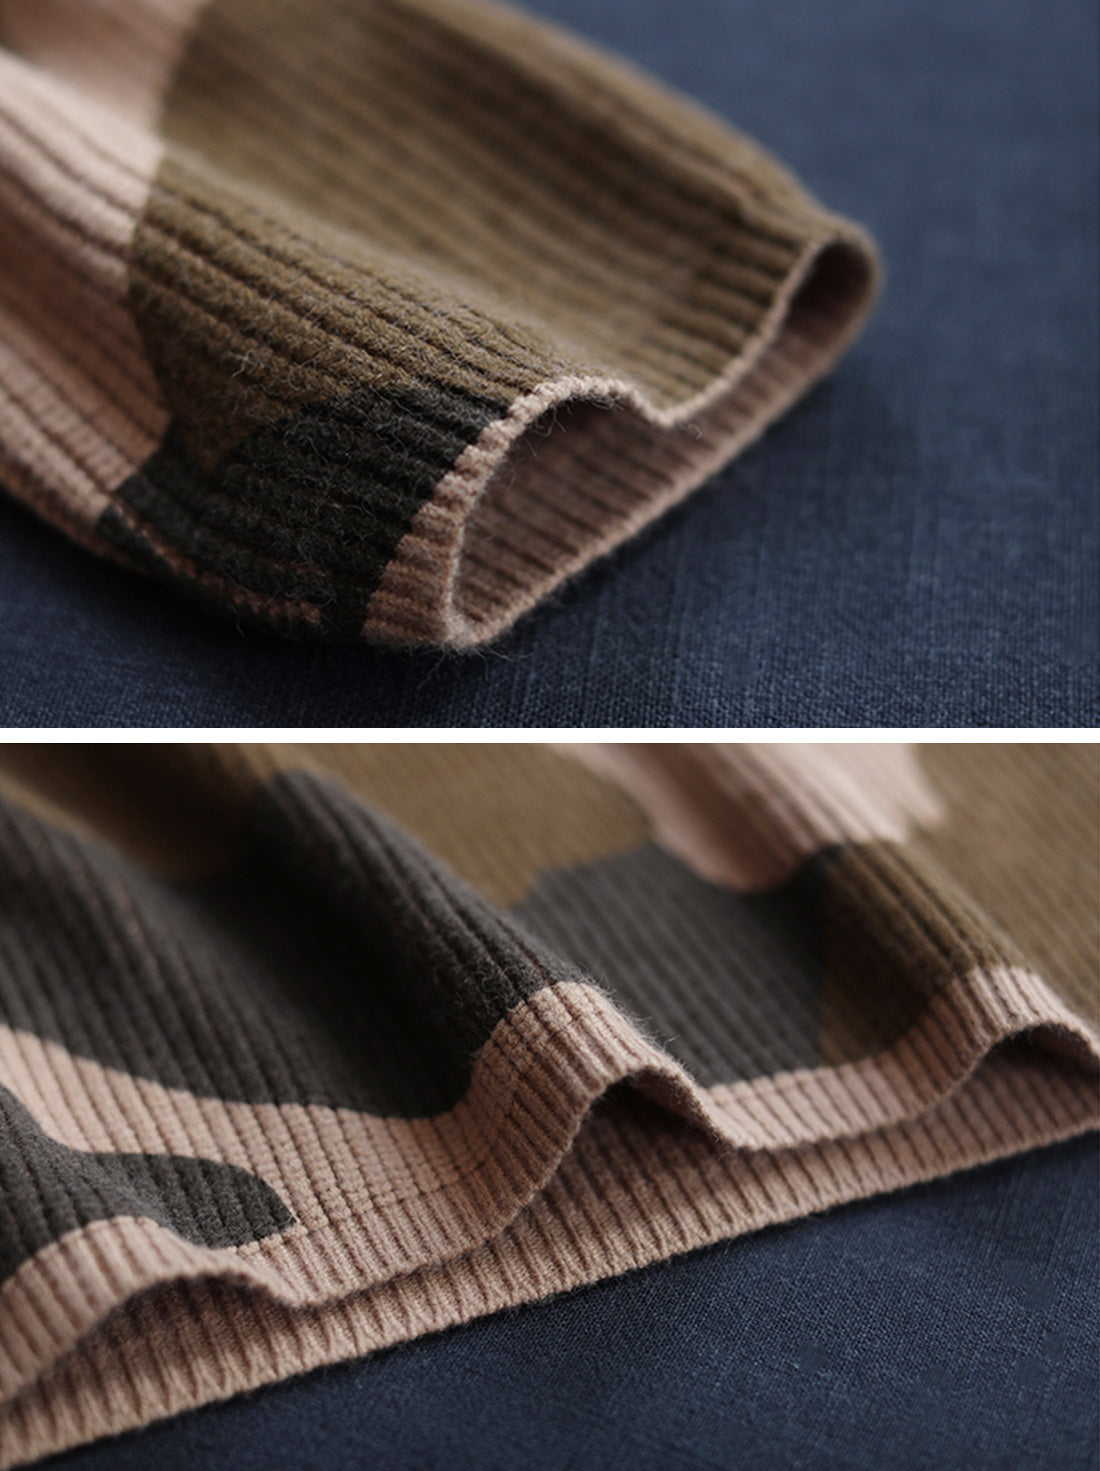 Wild Camouflage Hooded Sweater Details 2